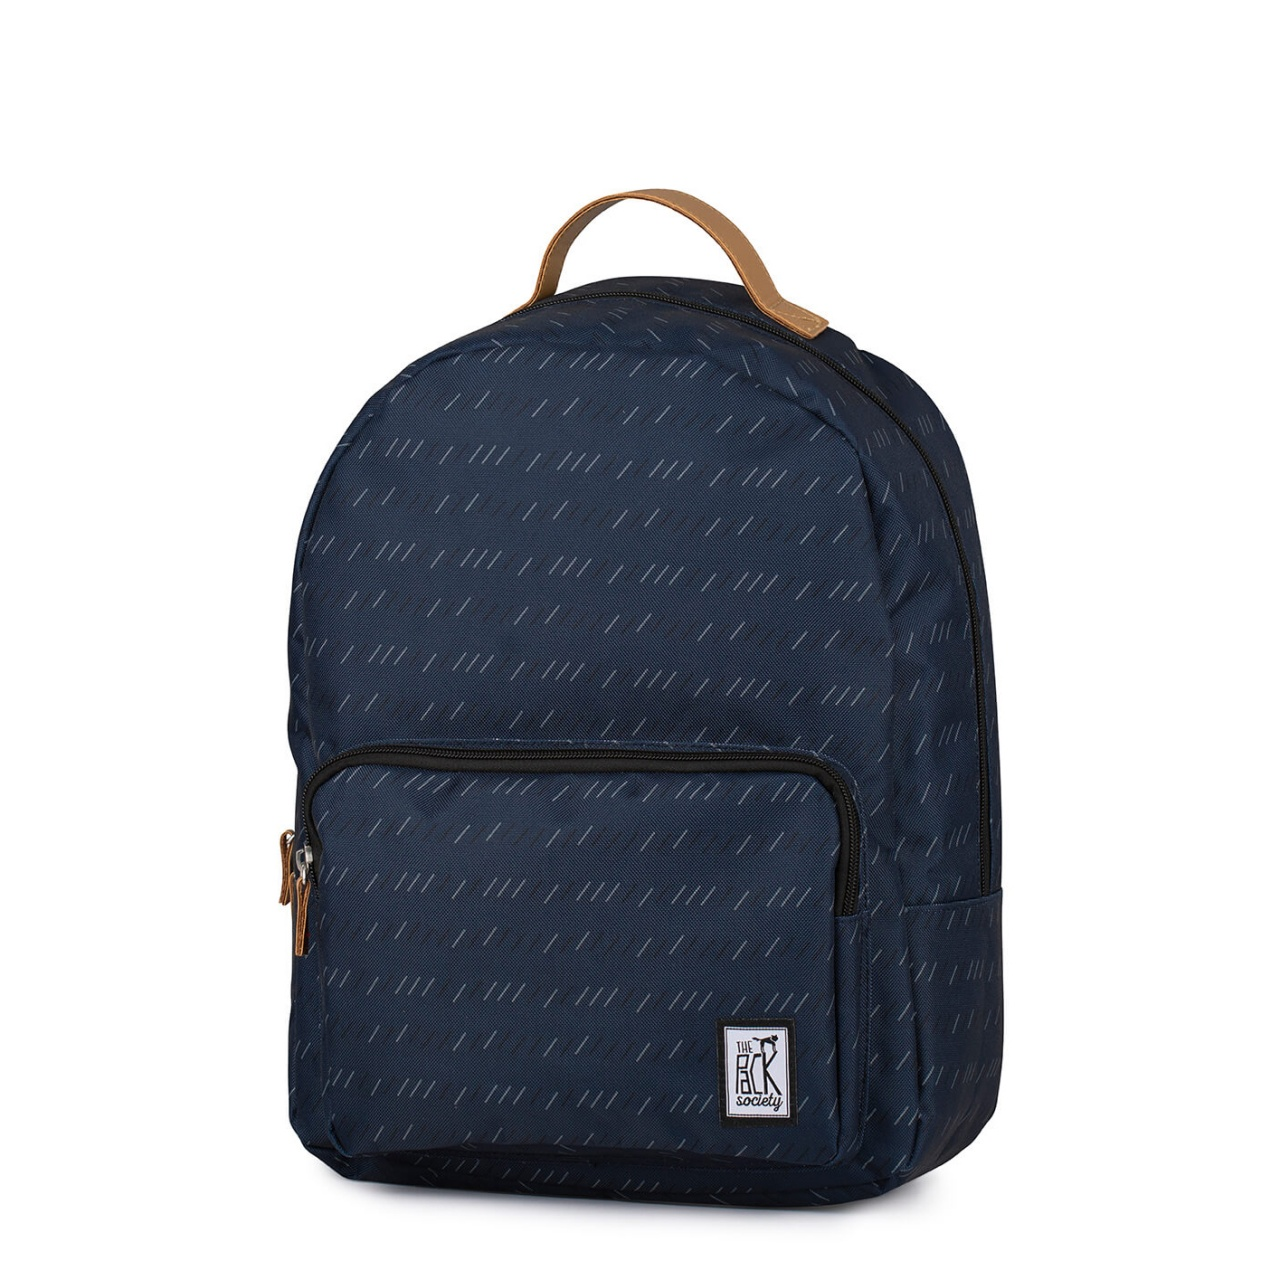 Rucsac clasic The Pack Society Dark Blue Stripe